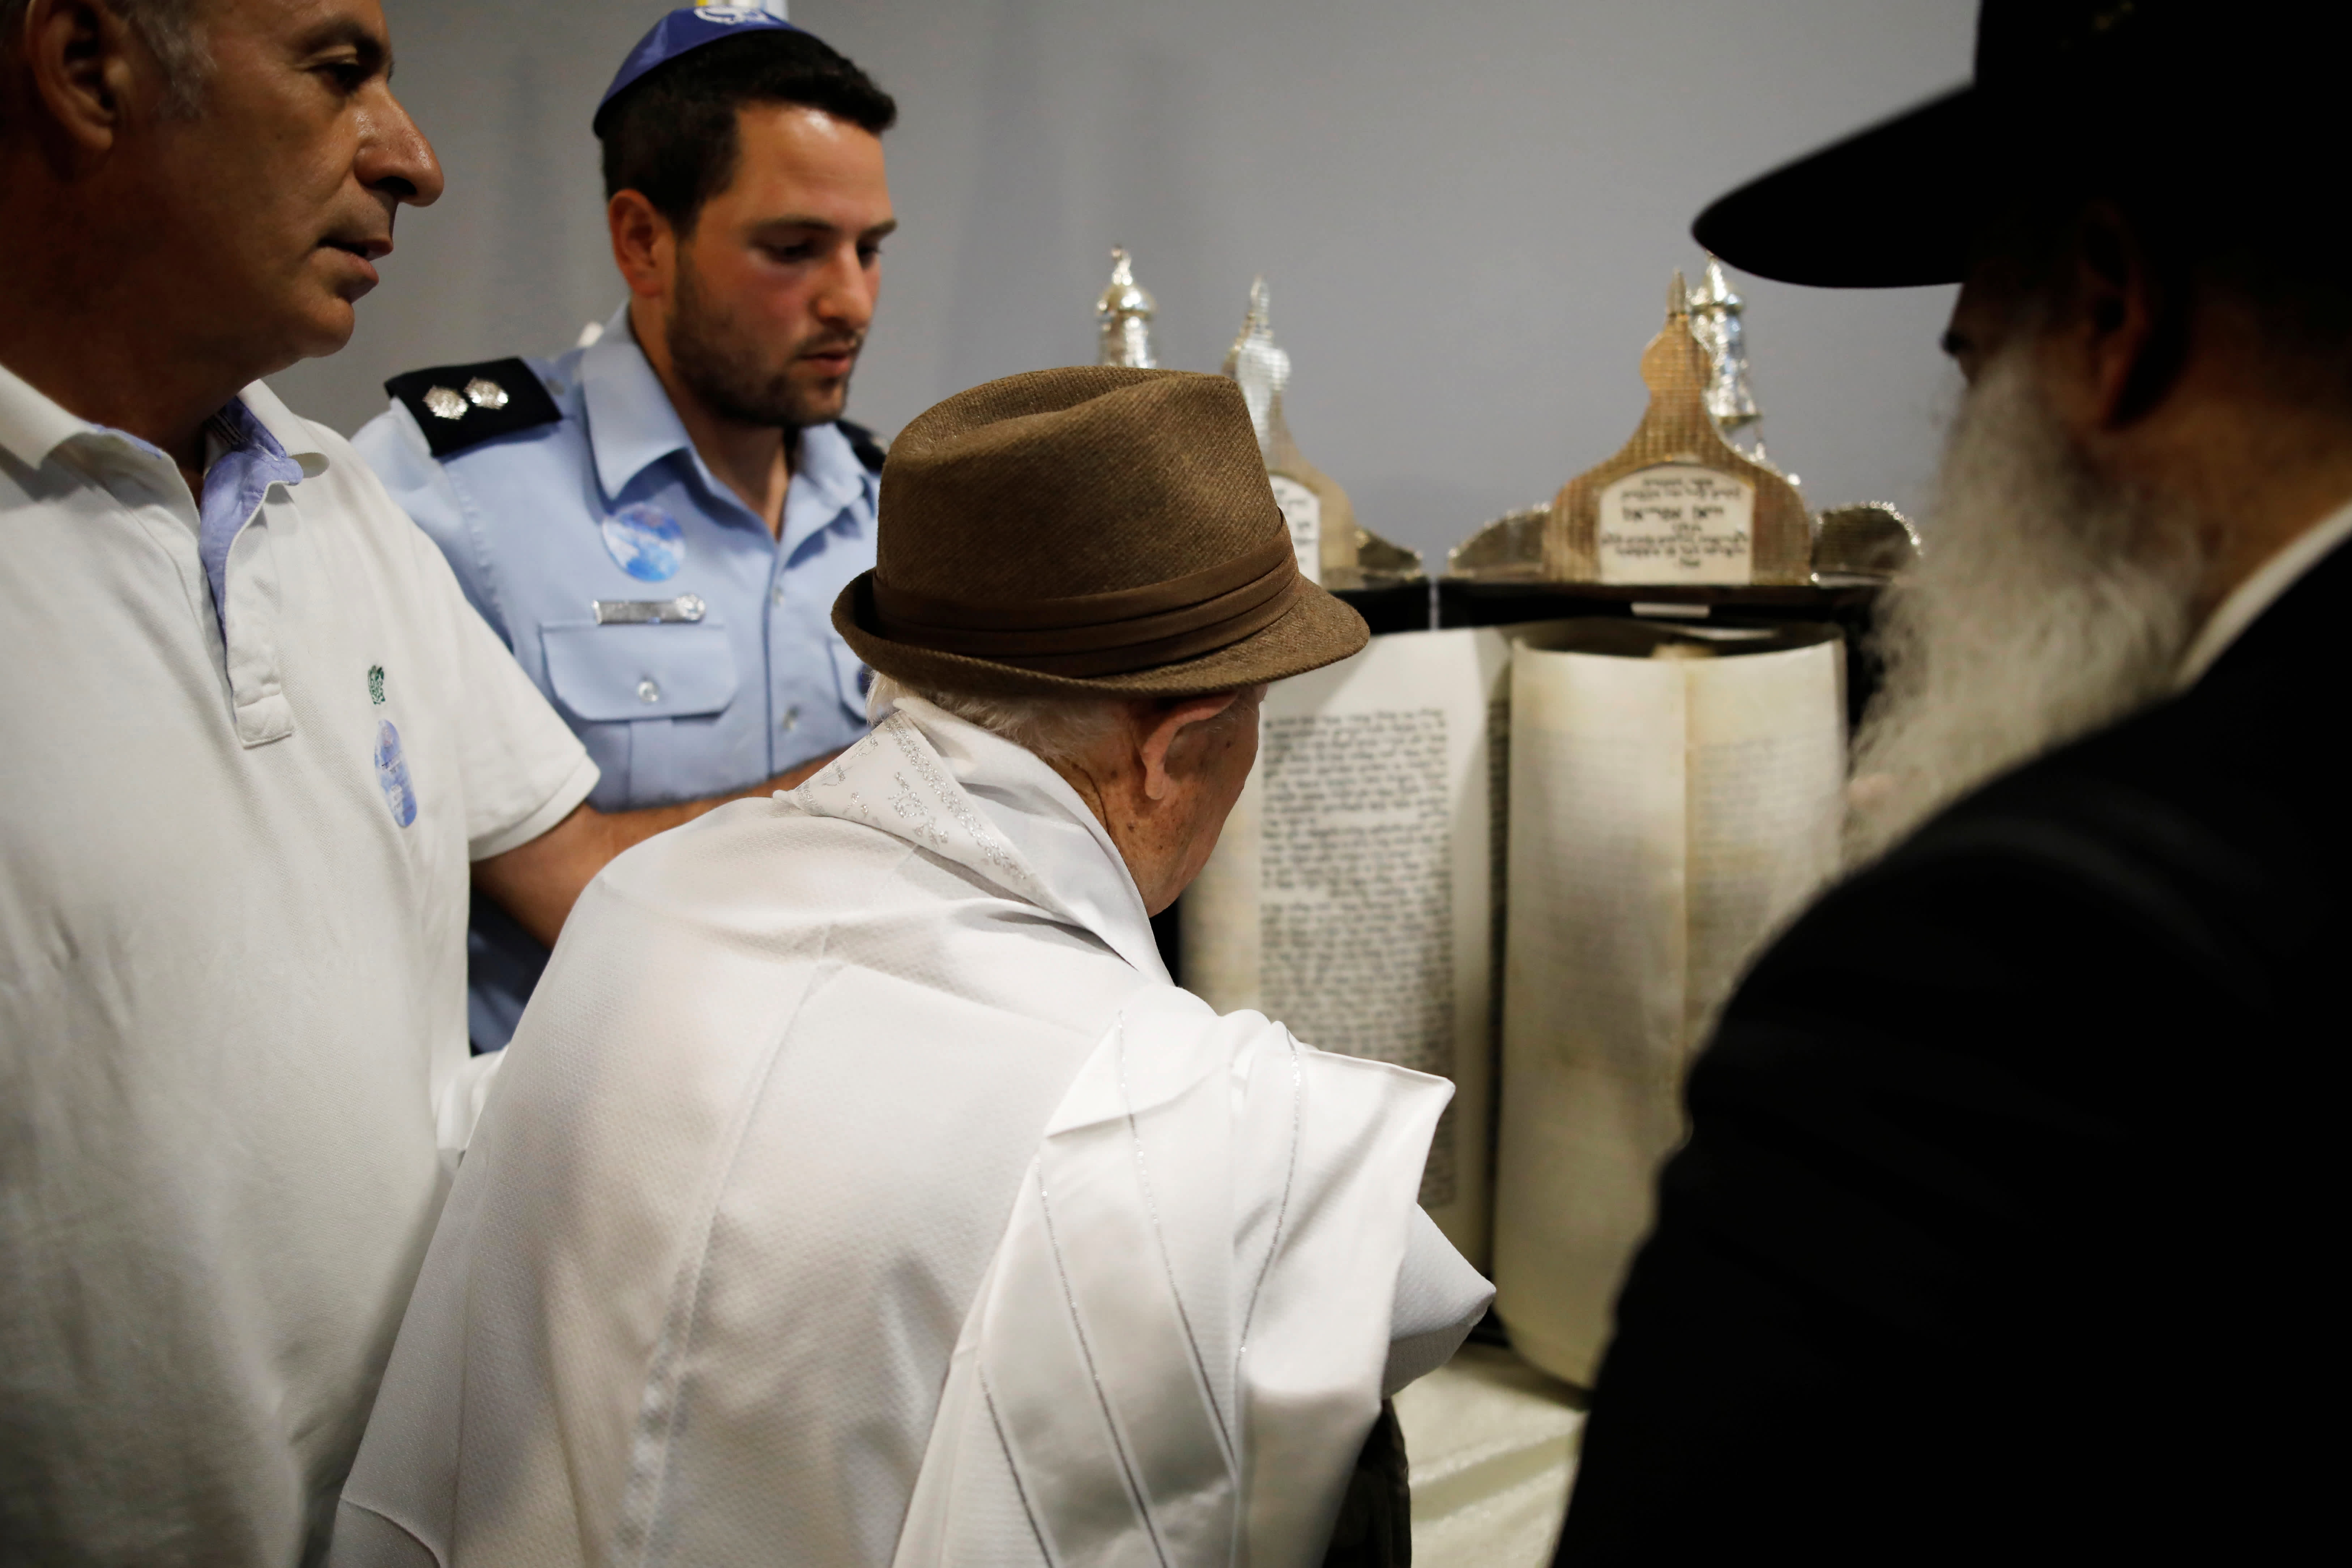 Shalom Shtamberg (C), a 93-year old Holocaust survivor, reads from a Torah scroll during his bar mitzvah ceremony, a Jewish coming-of-age celebration traditionally marked by boys at the age of 13, in Haifa, Israel August 31, 2017. (Reuters/Amir Cohen)